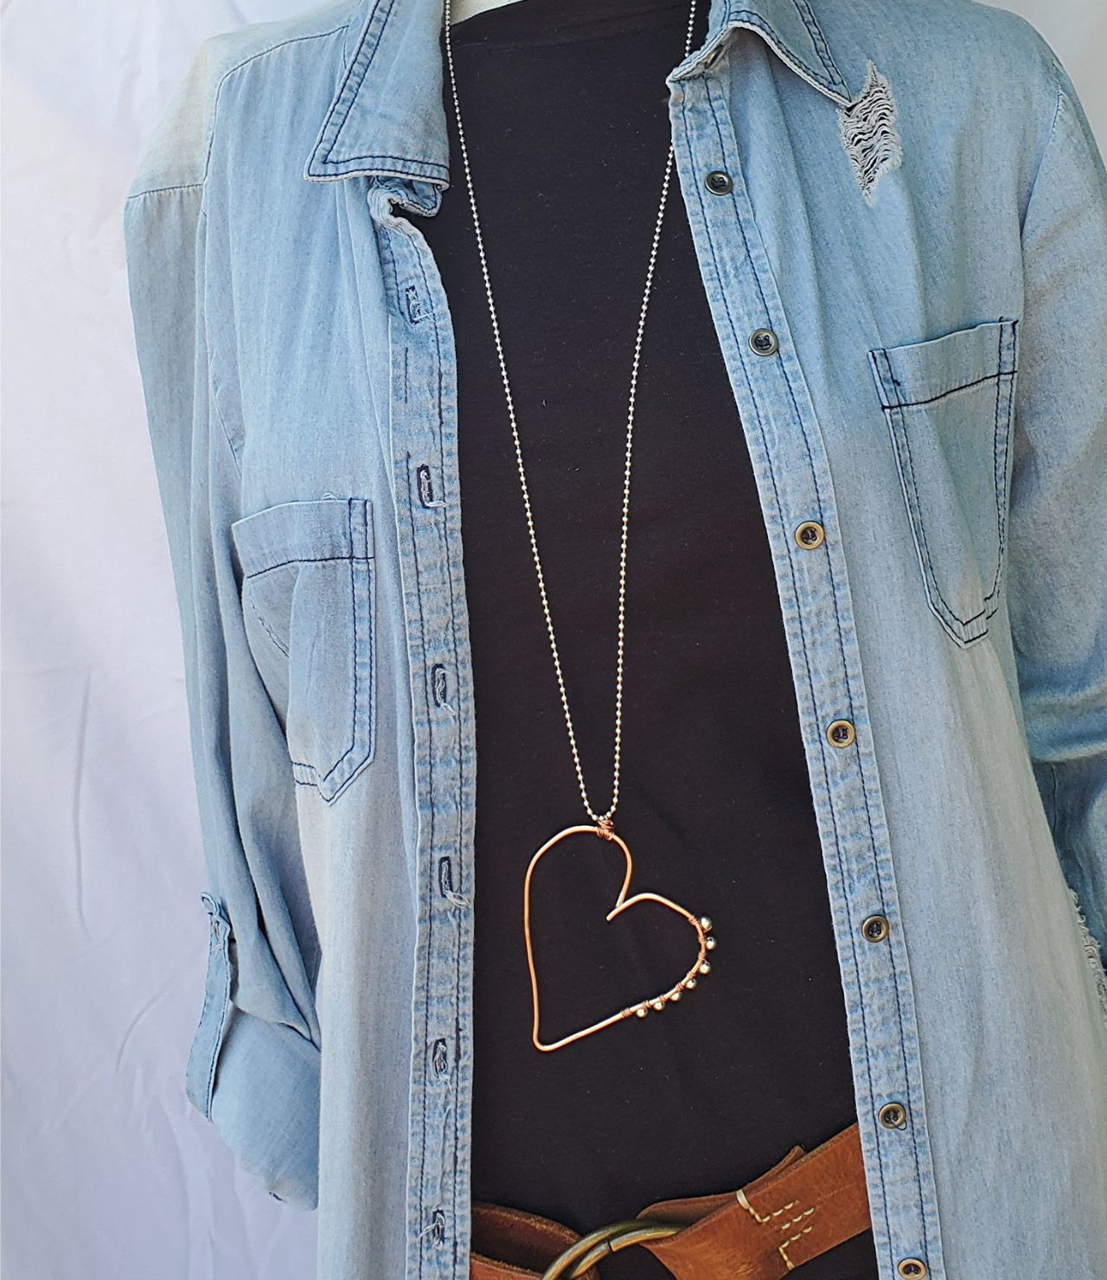 copper open heart long casual necklace with denim outfit